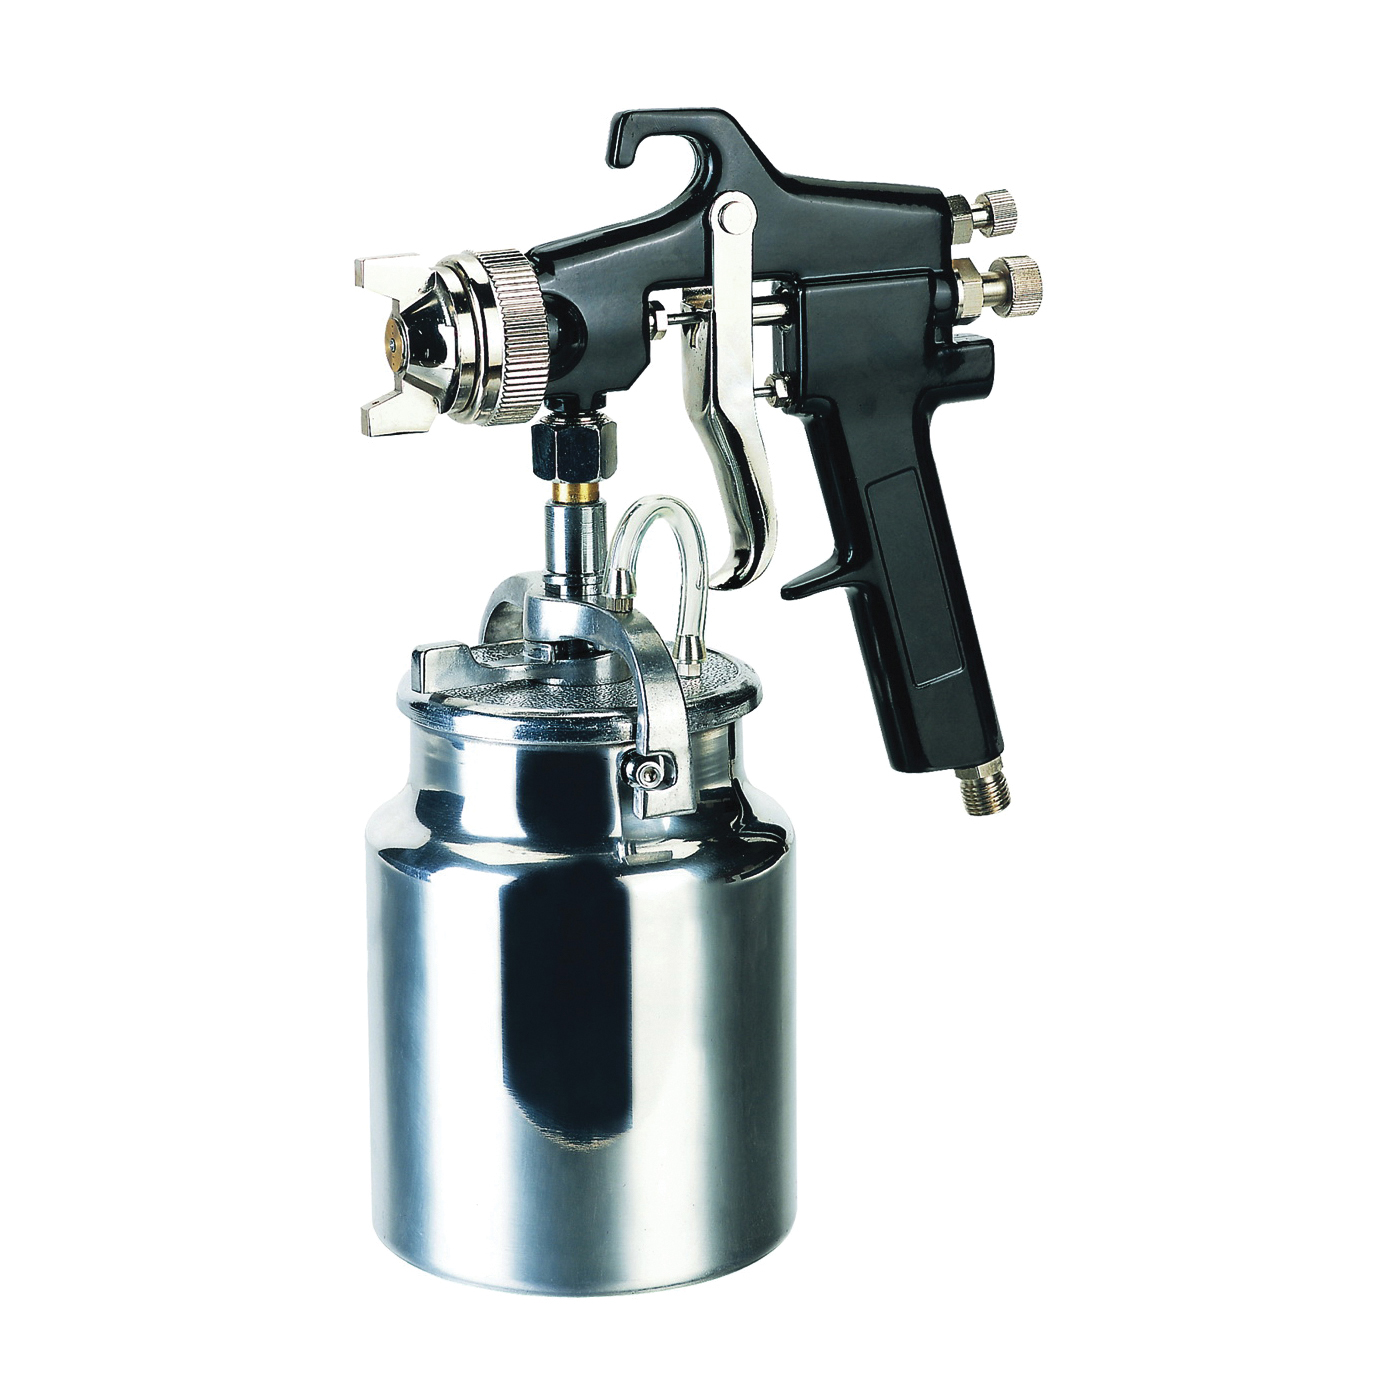 Picture of Speedway 50180 Spray Gun, 1.7 mm Nozzle, Siphon Feed Throttle, 6 cfm Air, 50 to 70 psi Air